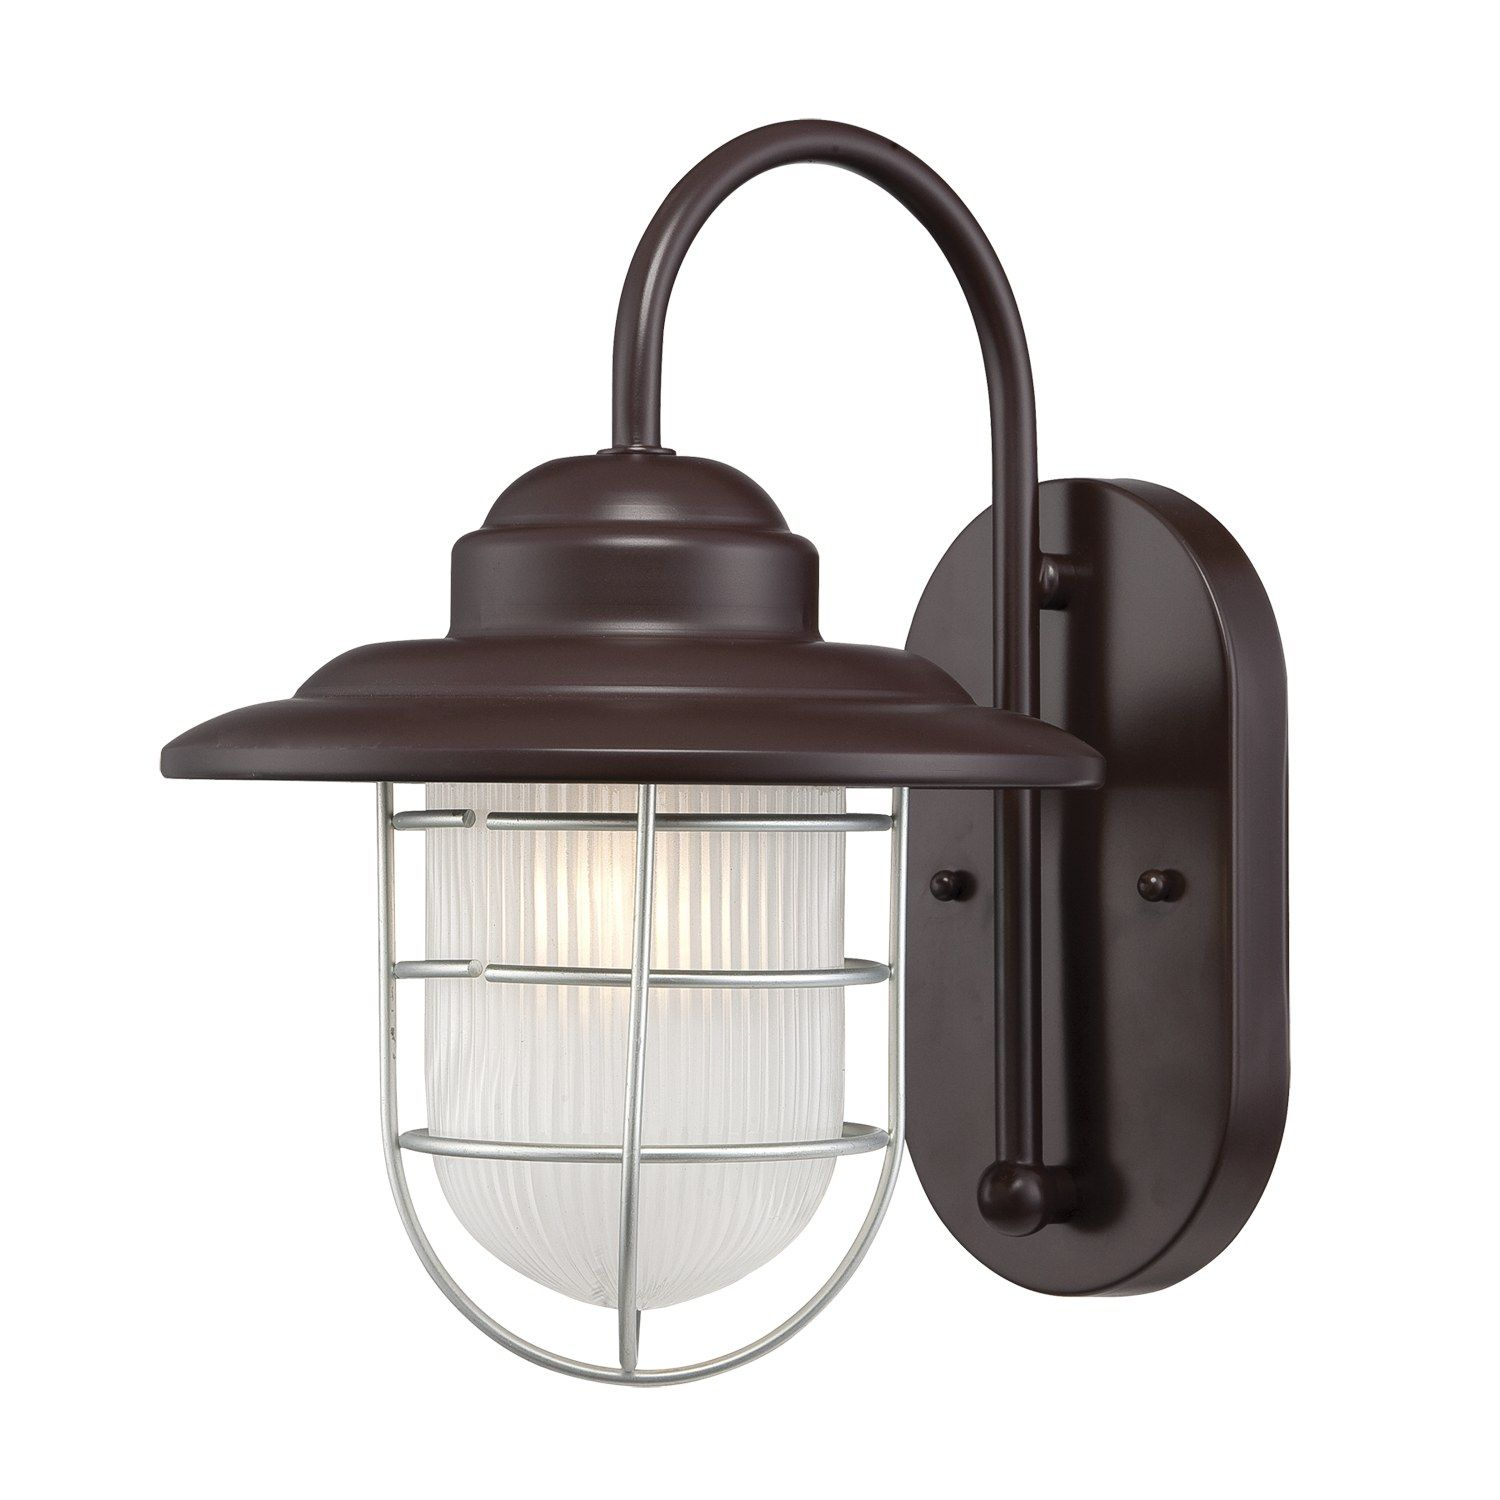 Millennium lighting wall bracket series available in